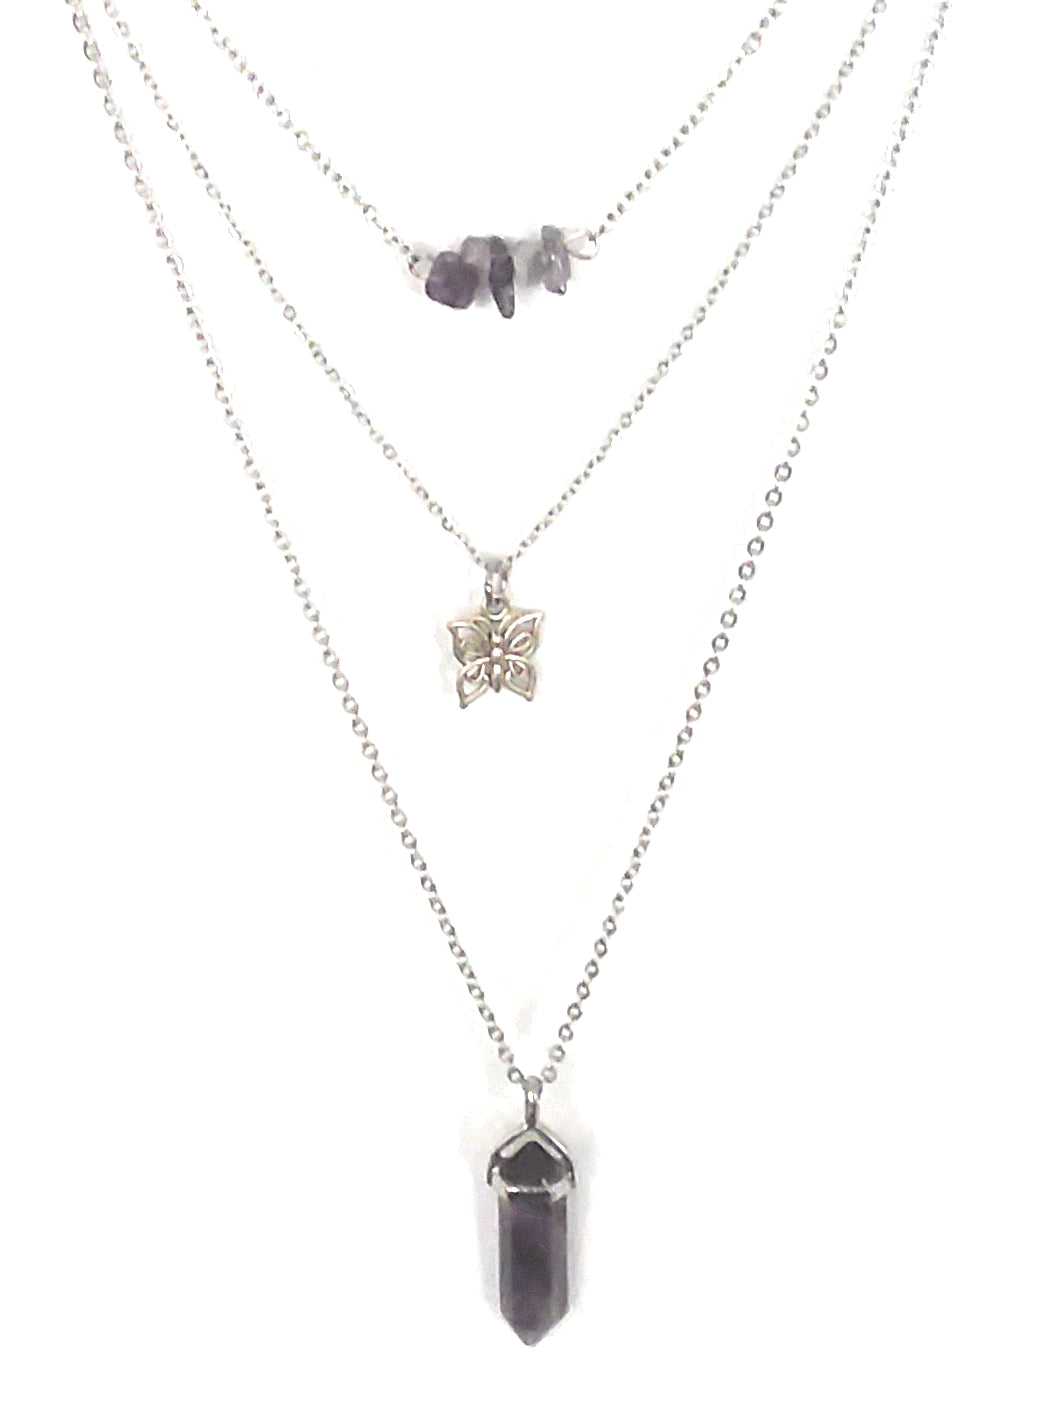 Gemstone & Charm Layered Necklace Set - Amethyst